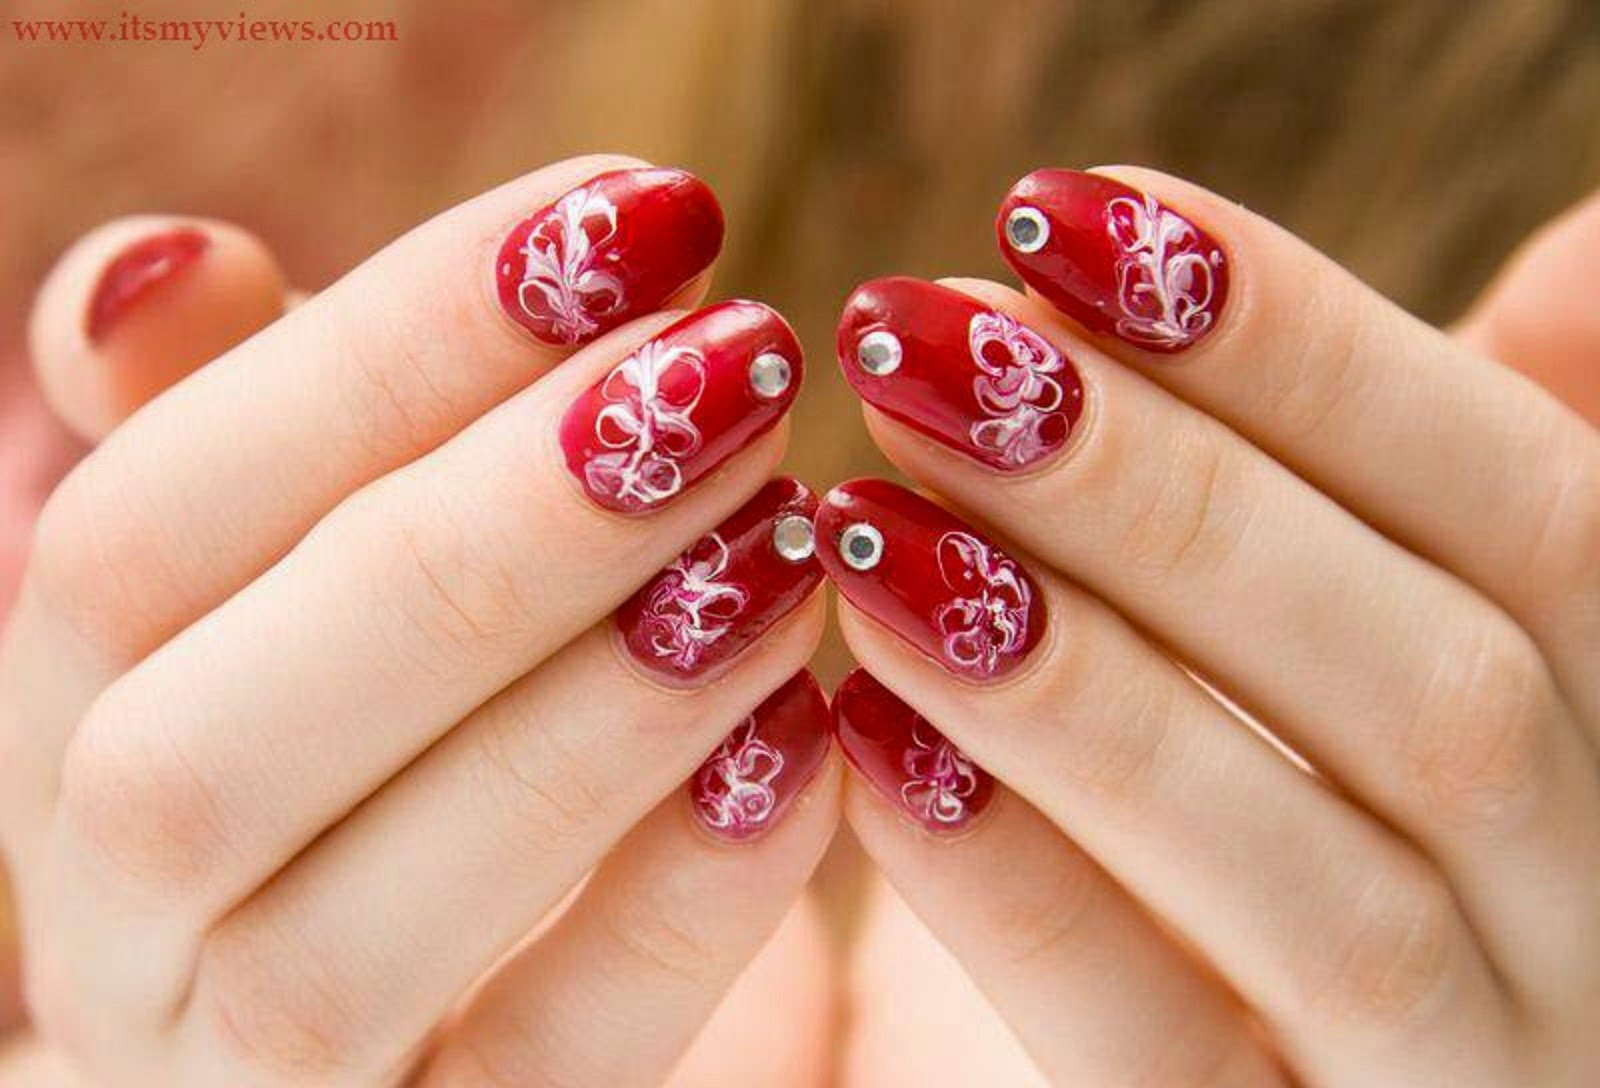 Very Beautiful And Preity Nails Art Red Color Wallpapers Free